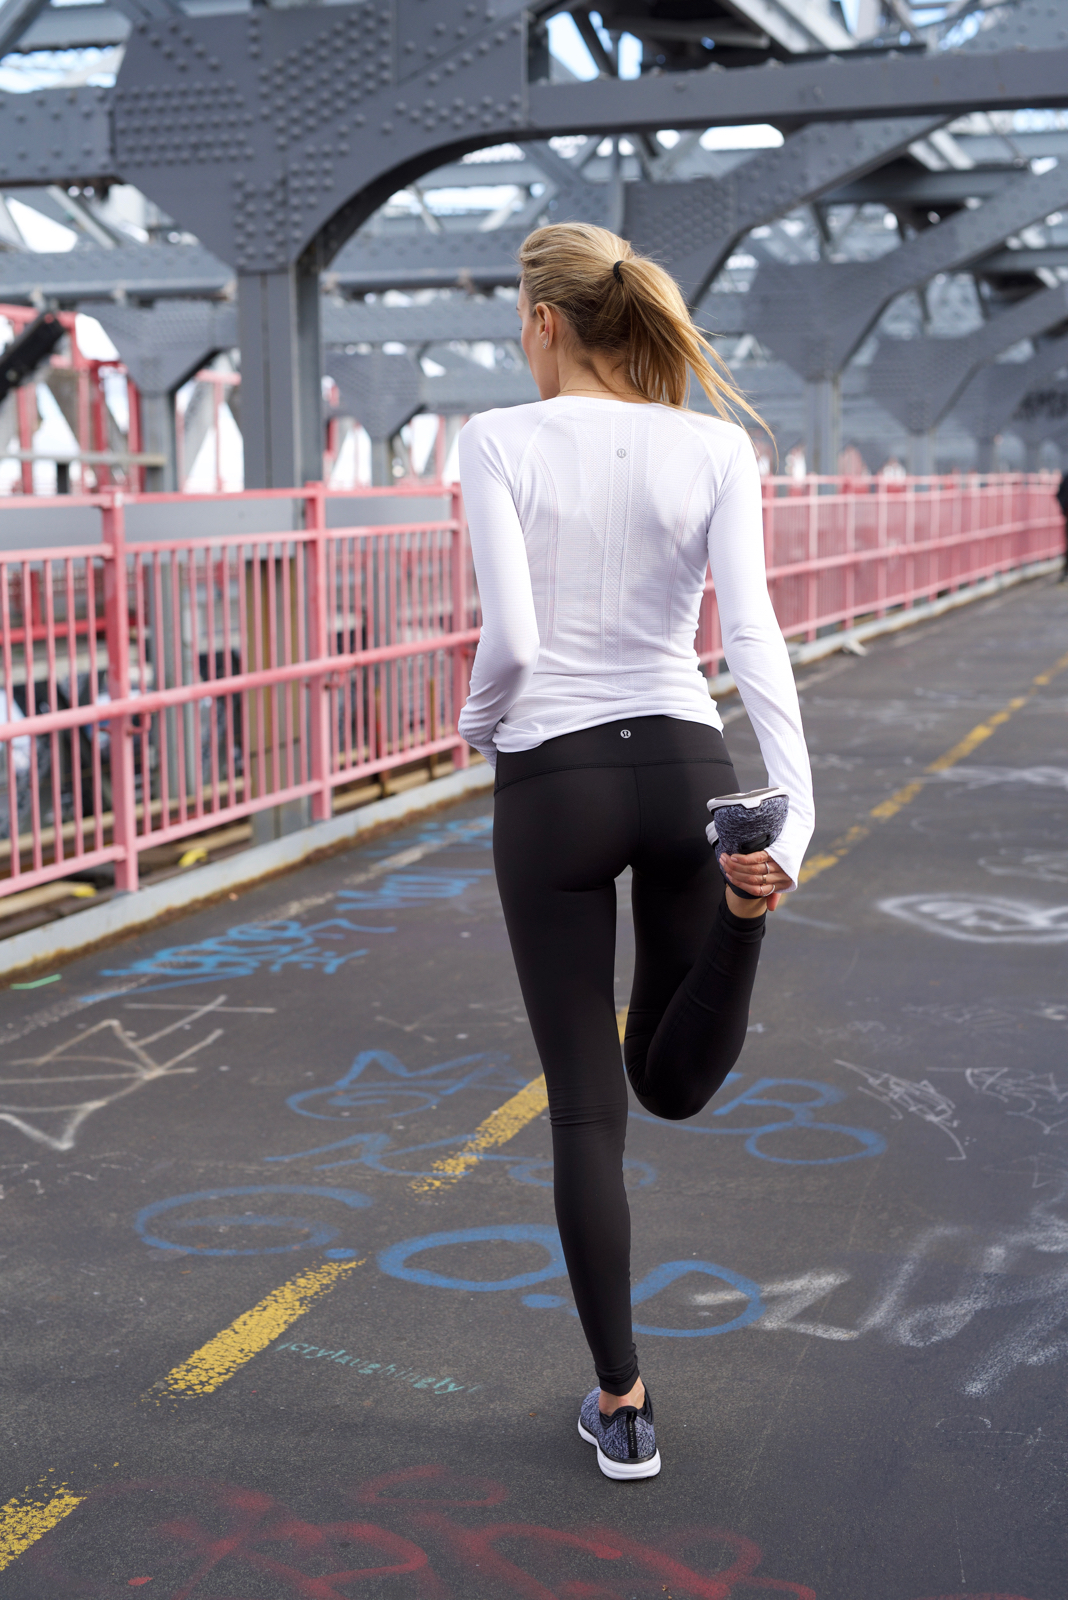 Lululemon, Sweat Life, Running, How to stay Fit, Get in shape for holidays